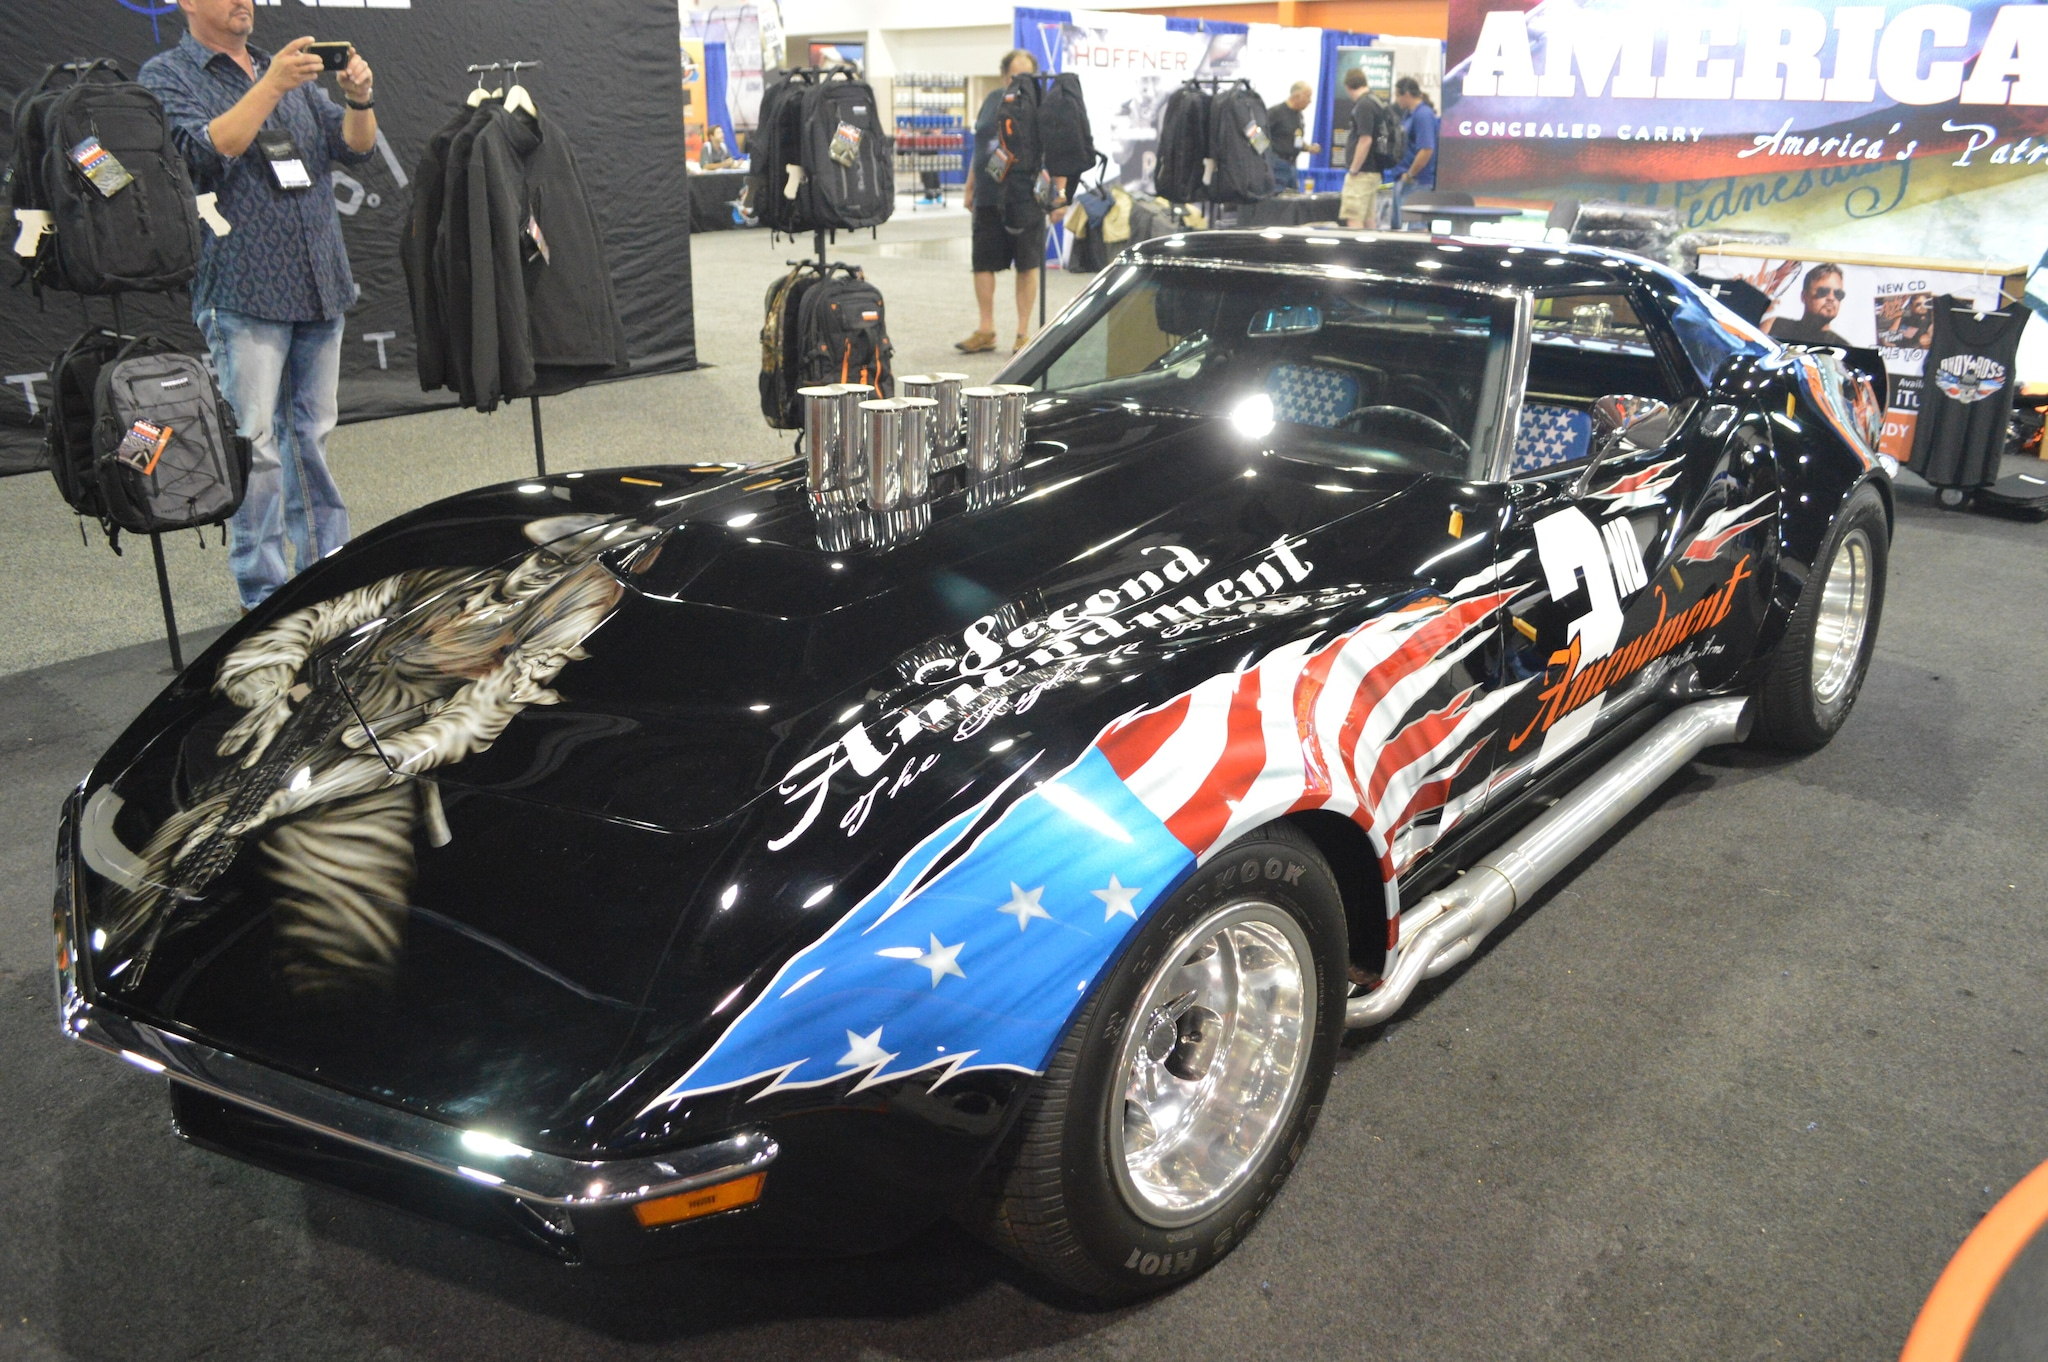 Musician Andy Ross' American Rebel brand booth set the tone for the Expo with this 2A-painted Corvette. (Photo: Kristin Alberts/Guns.com)